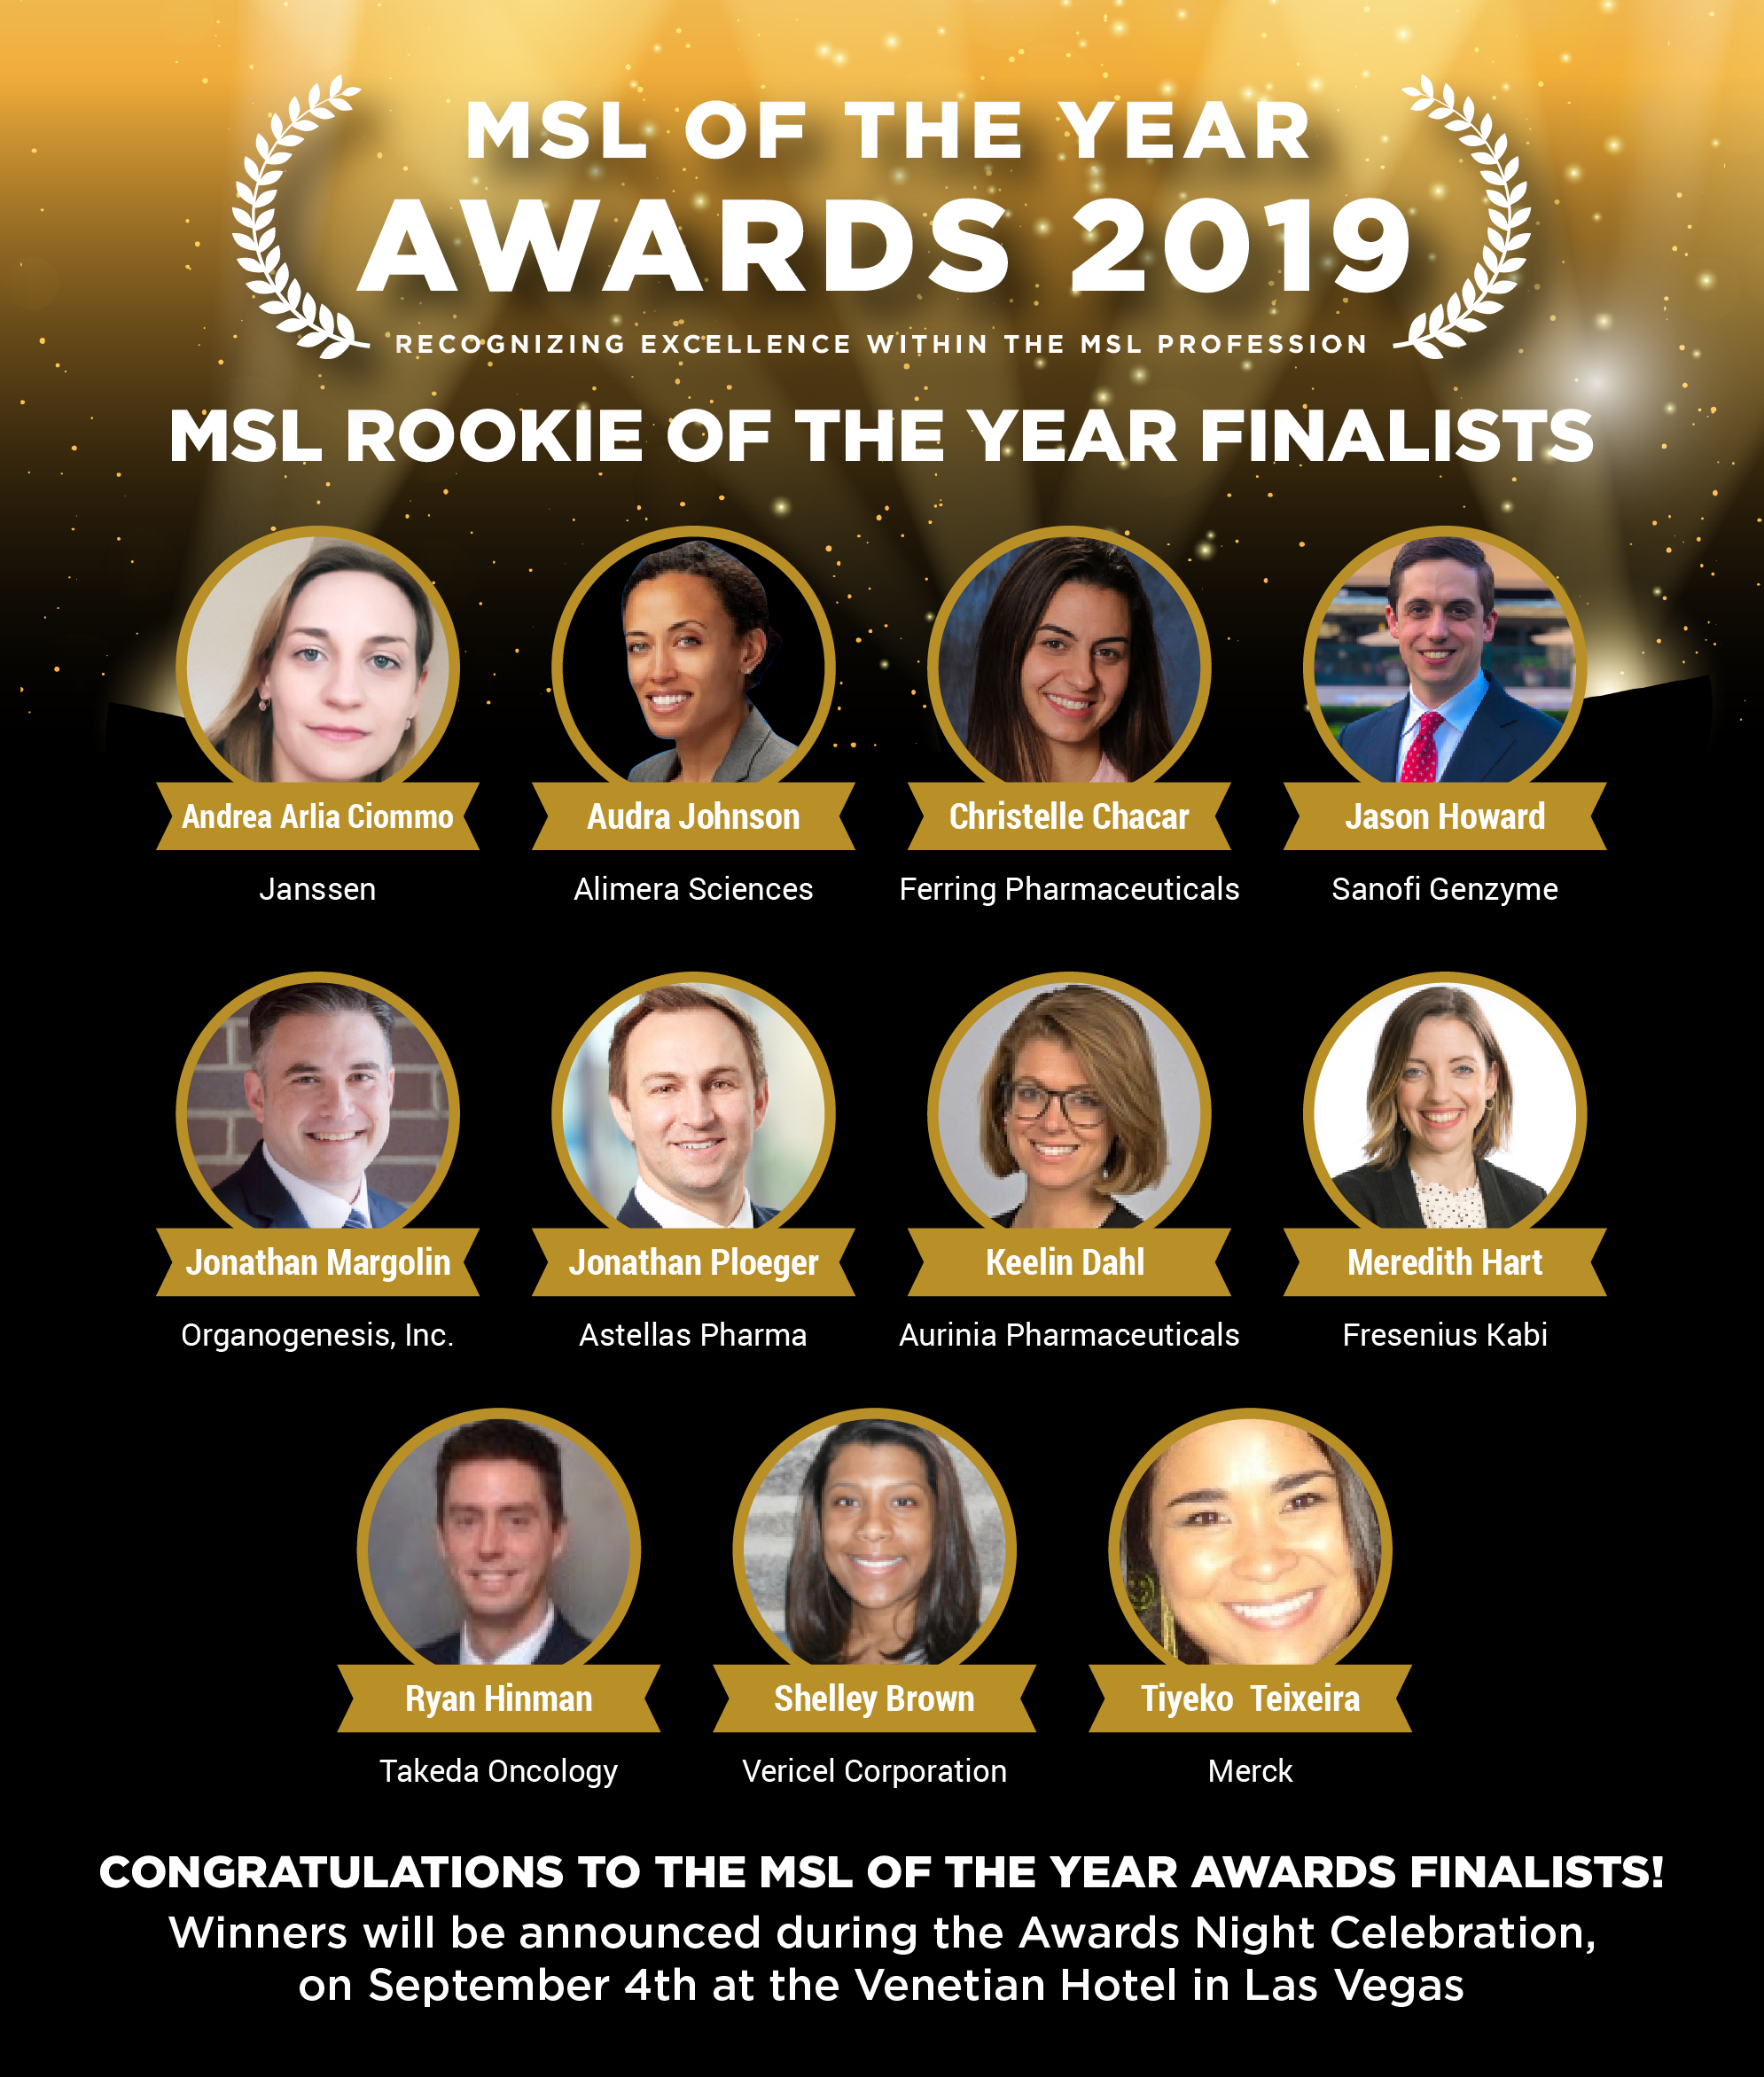 msl rookie of the year awards 2019